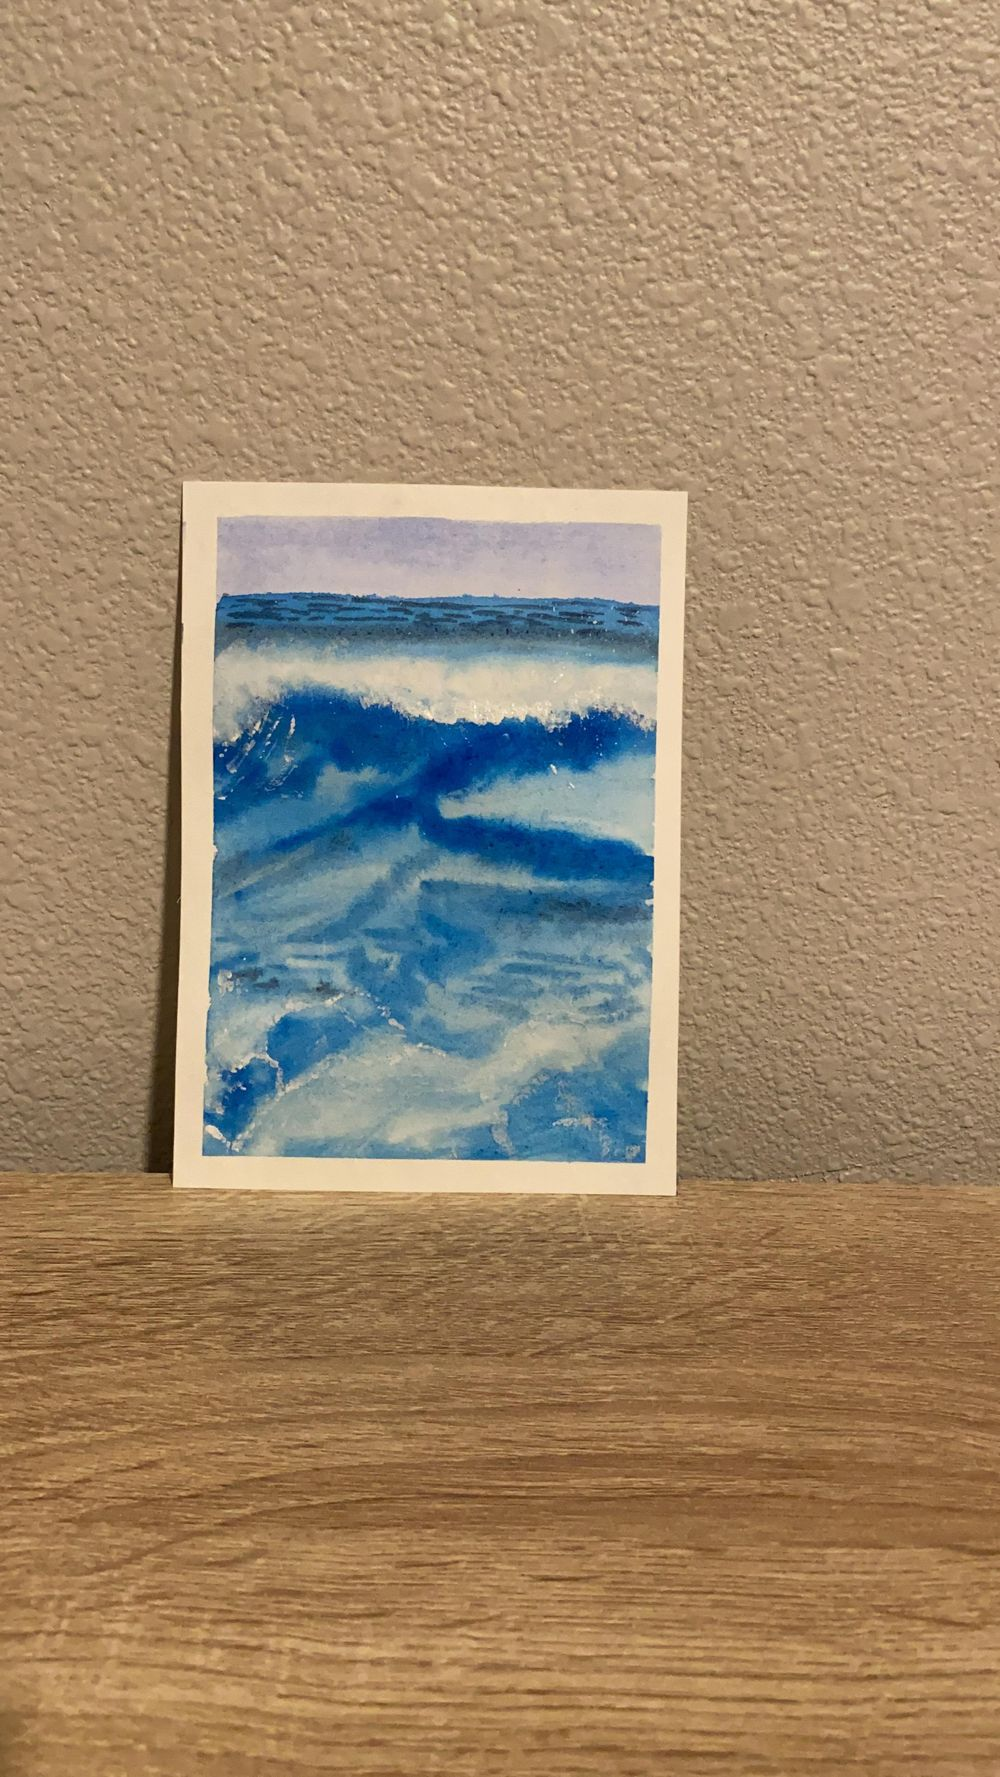 Waves - image 1 - student project